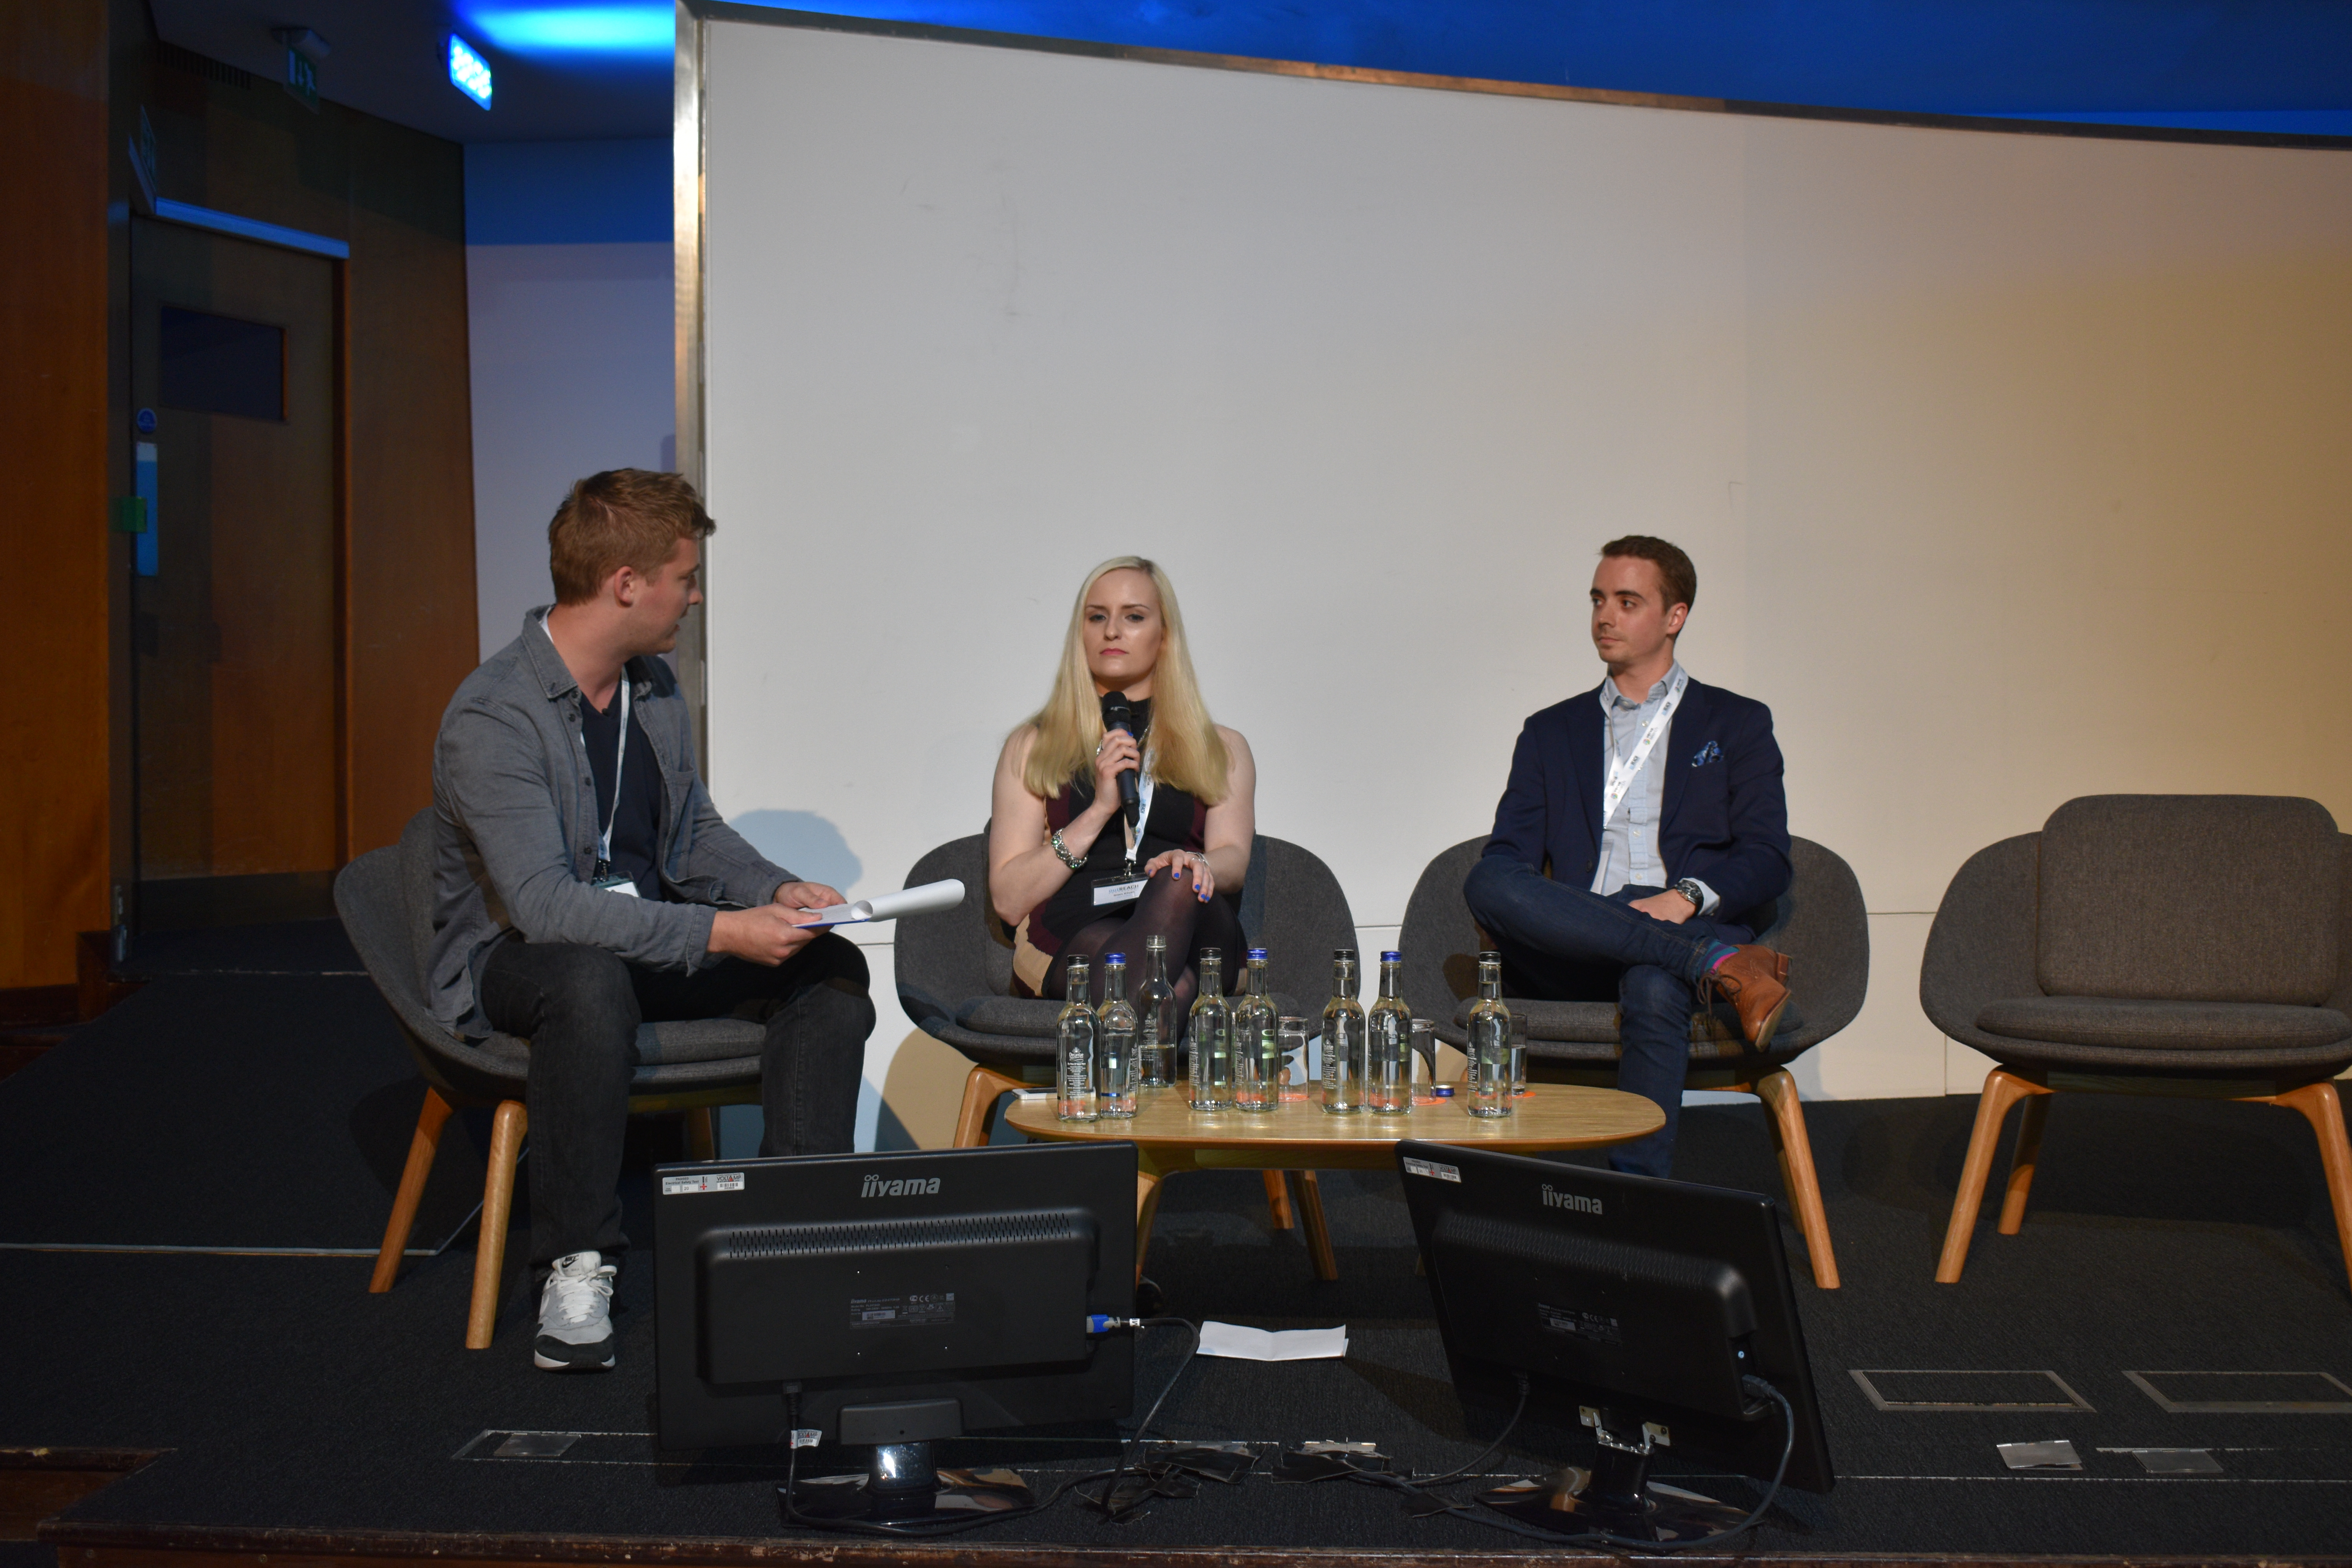 Panellist at a Q&A for Verve Search's outREACH conference in London, on how to pitch to journalists